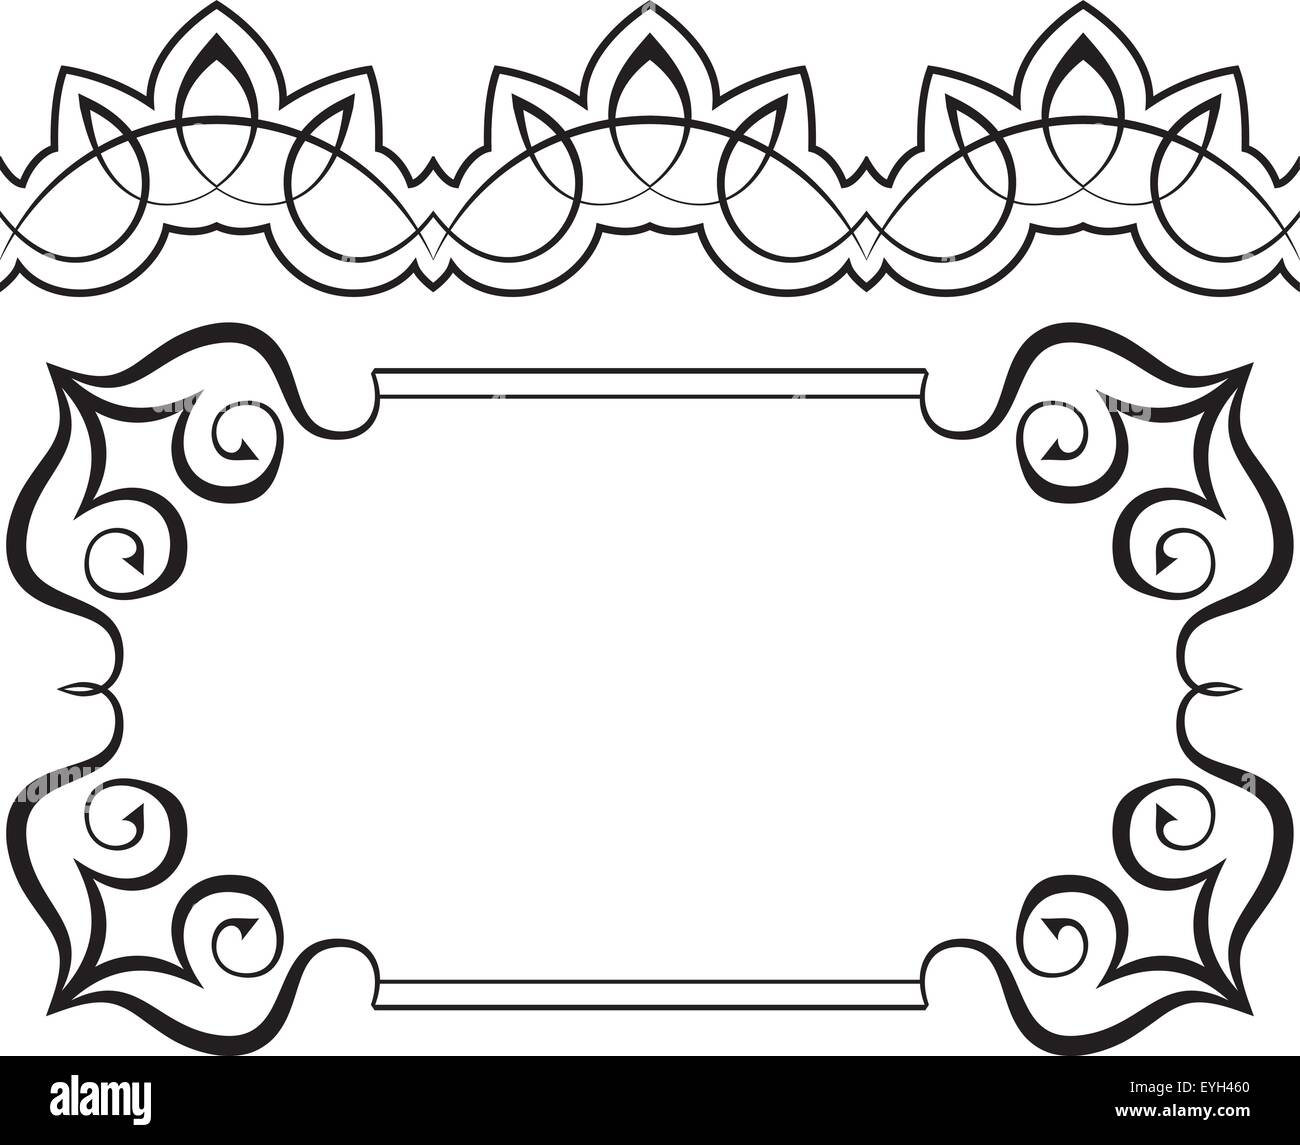 Borders Frames Design Black and White Stock Photos & Images